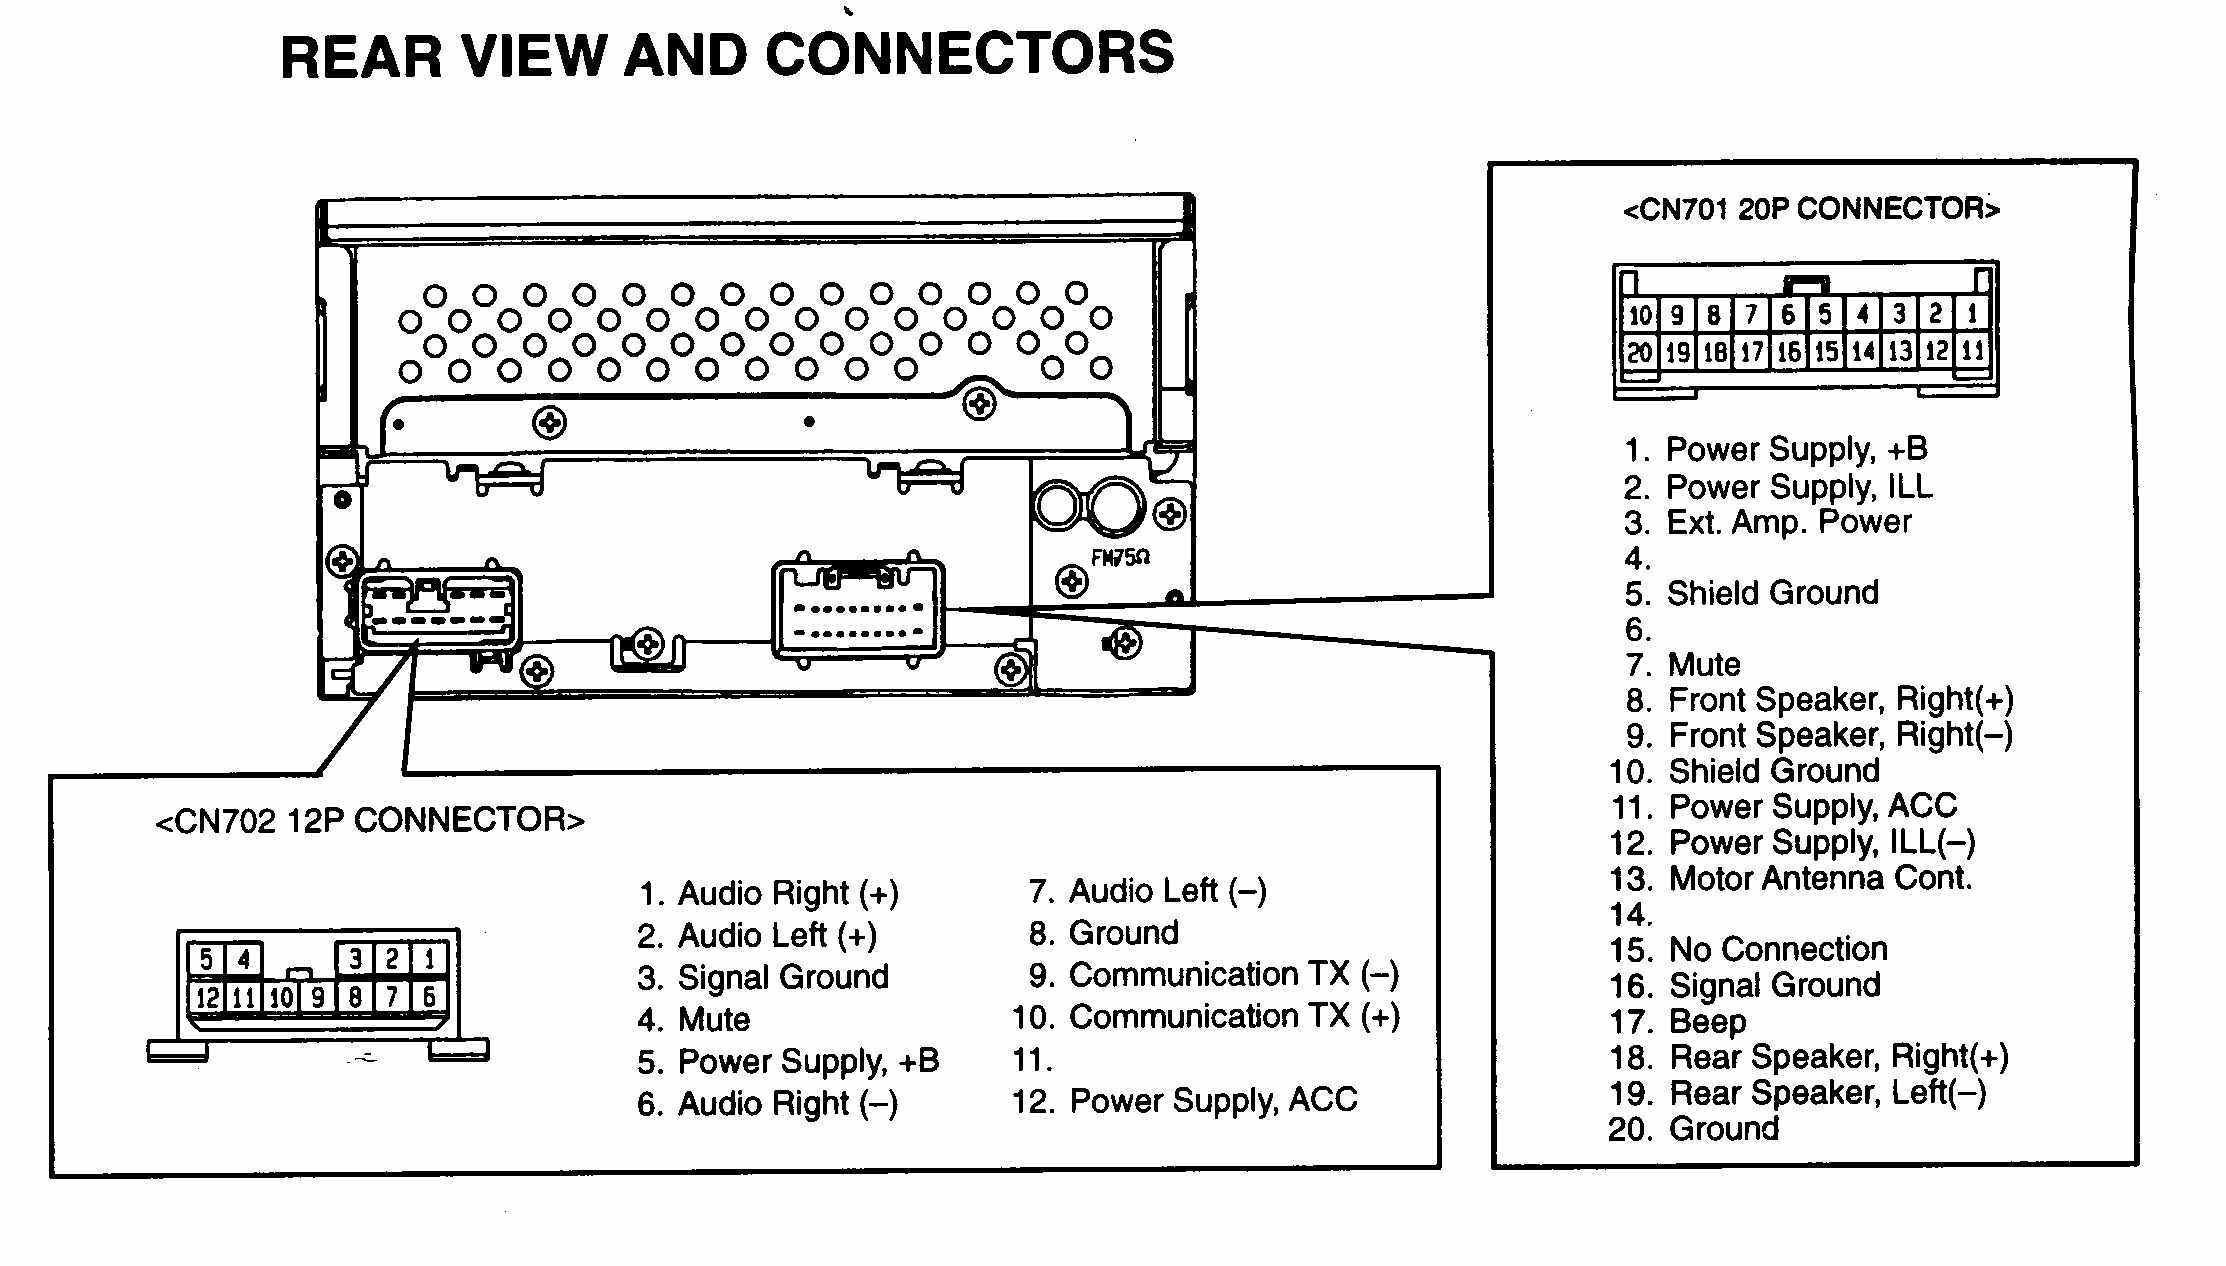 2001 Delphi Delco Electronics Wiring Diagram | Wiring Diagram - Delphi Radio Wiring Diagram